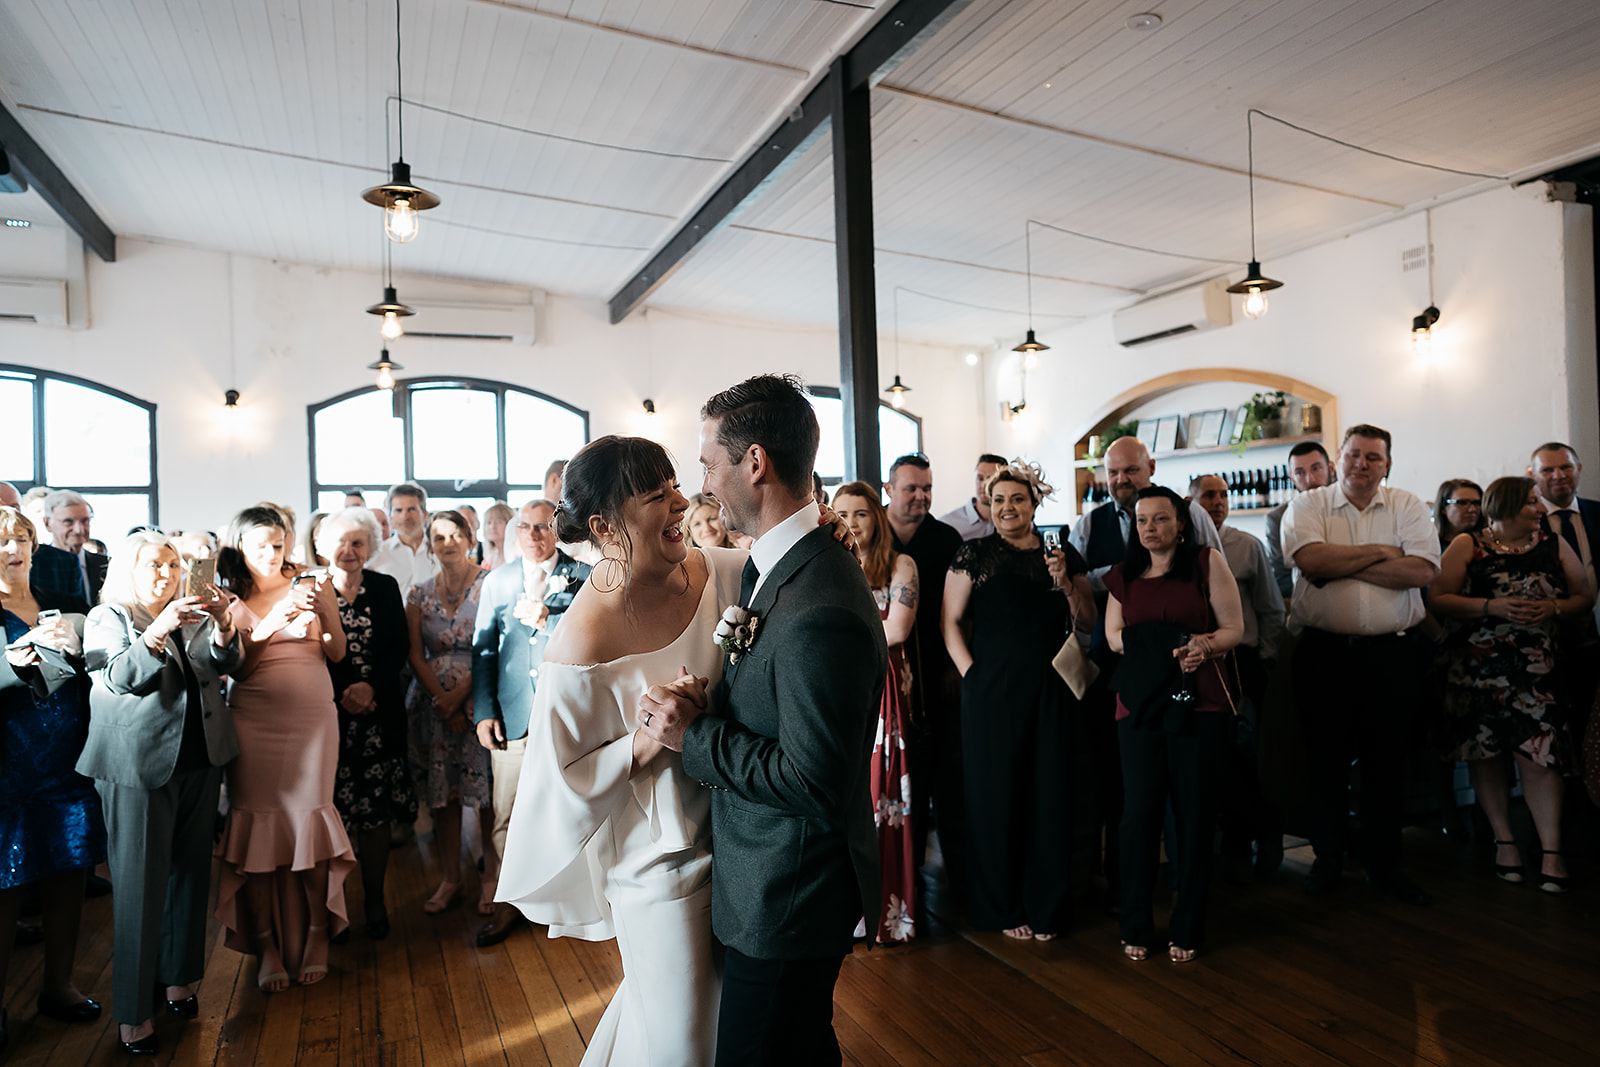 The First Dance - Nov 2019